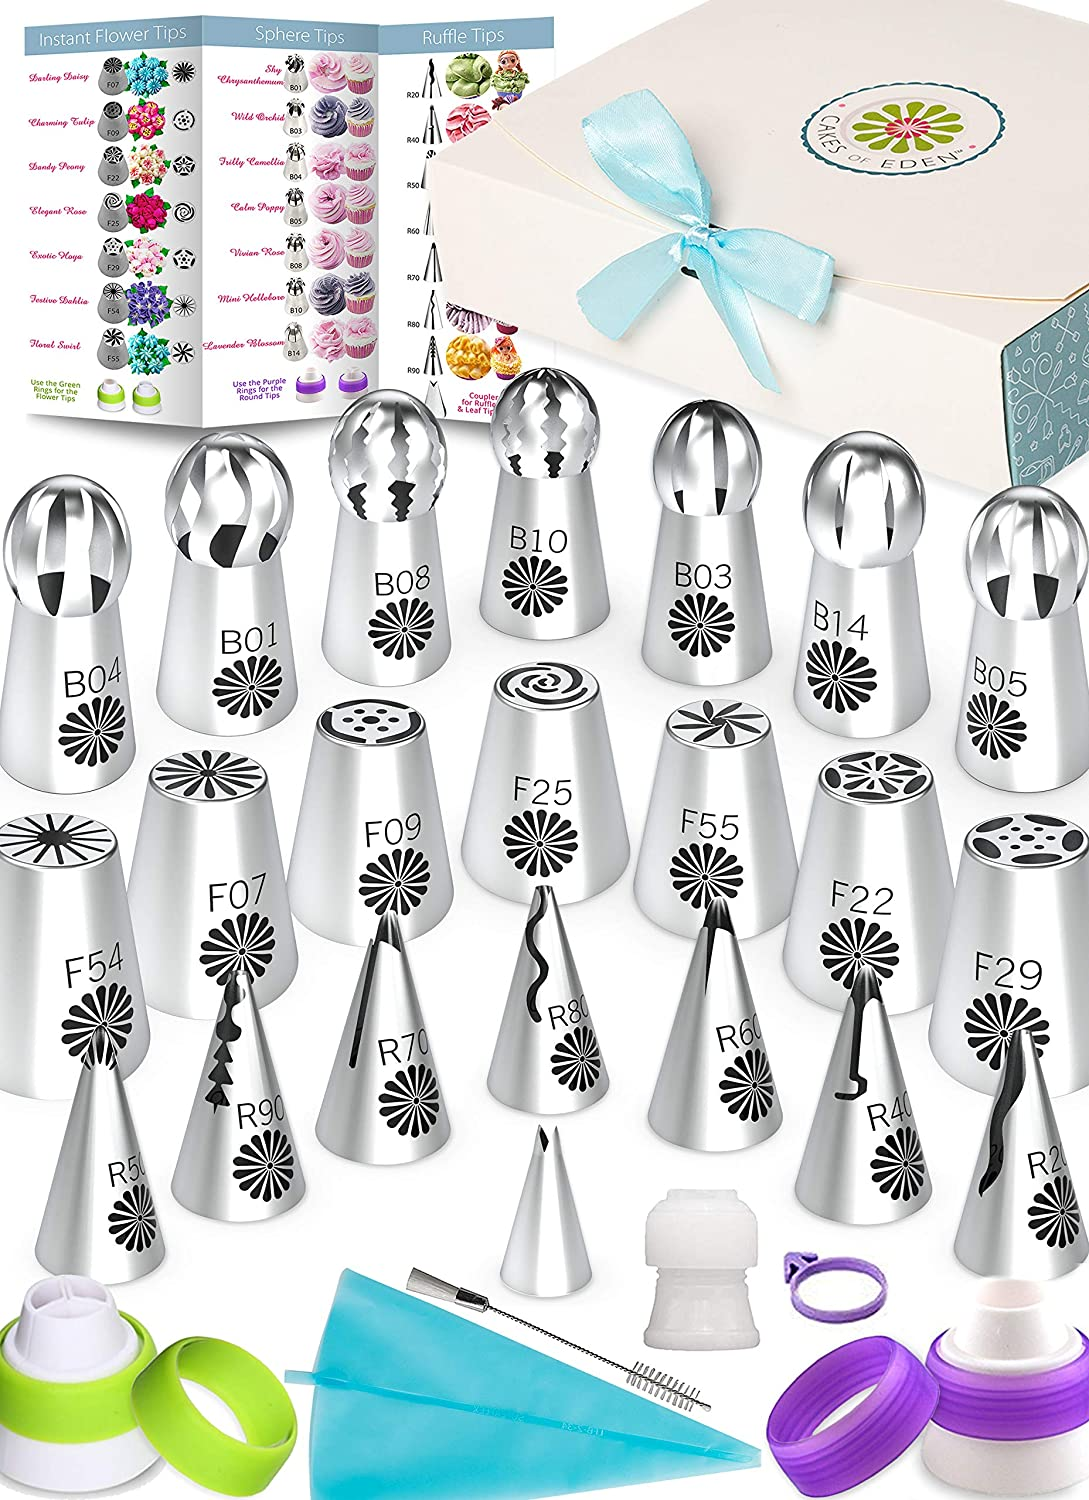 631fa96f52406 VARIETY RUSSIAN PIPING TIPS SET - 69pc Instant Flower Shaped Frosting  Cupcake   Cake Decorating Icing Nozzles. Bonus Supplies